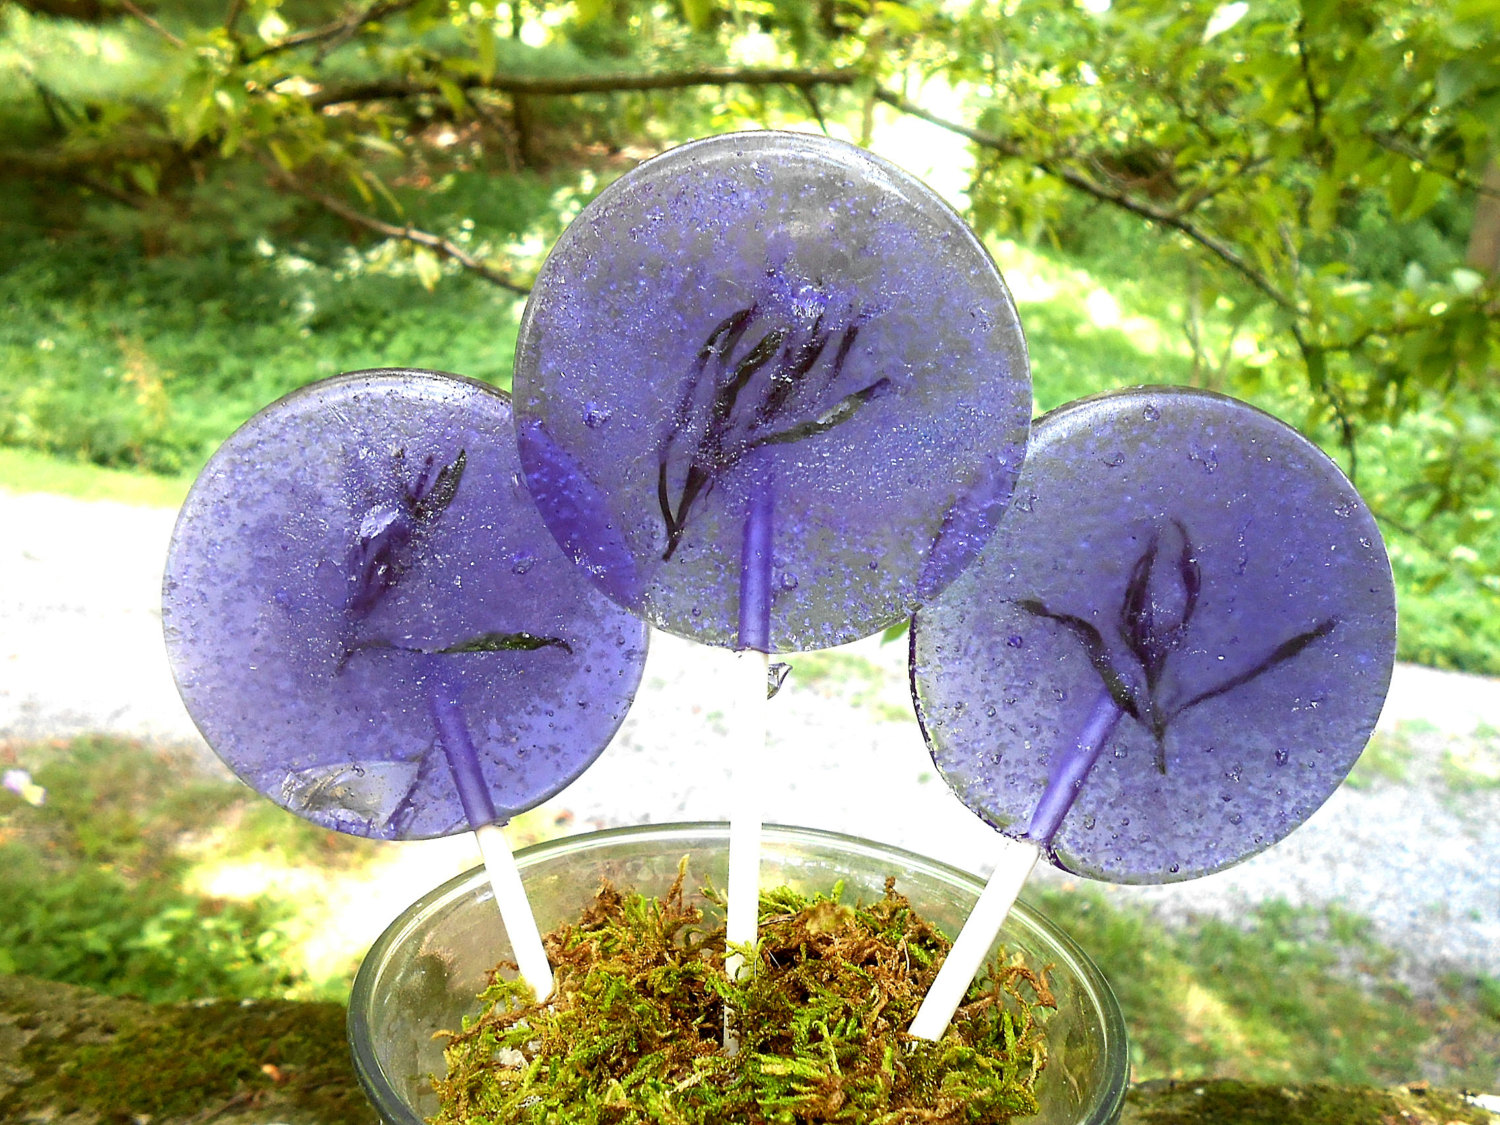 import-Barley_Water_Lavender_Flavored_Edible_Lavender_Sprigg_Giant_Lollipops_Wedding_Favors_6-4561c238ac8f6978077773ef1e227efc